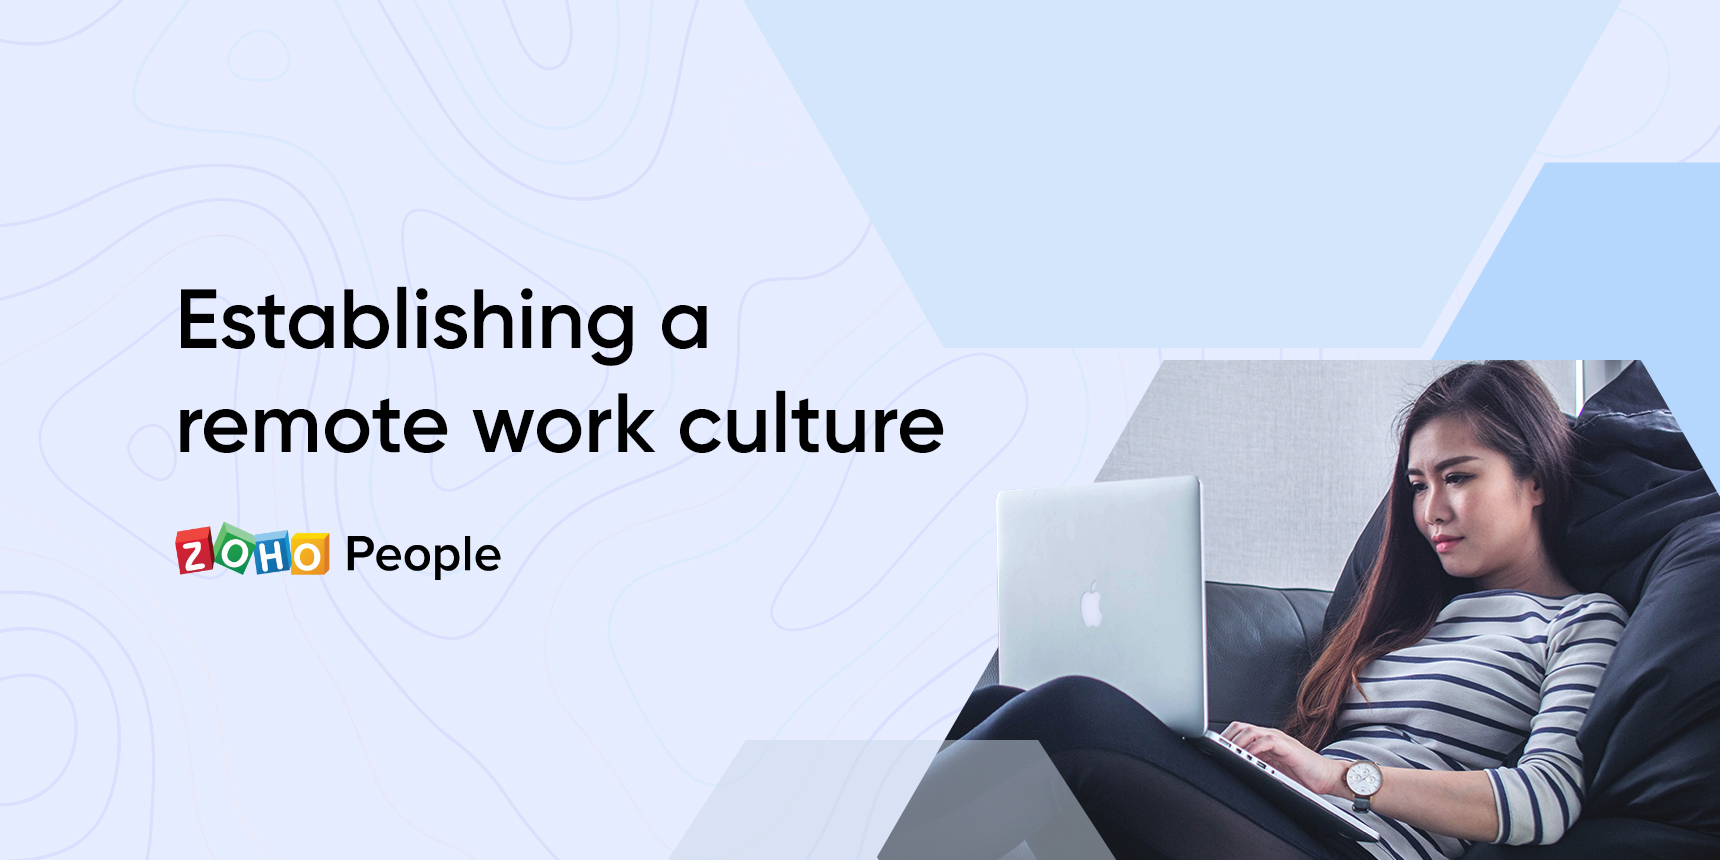 Creating the ideal remote work culture